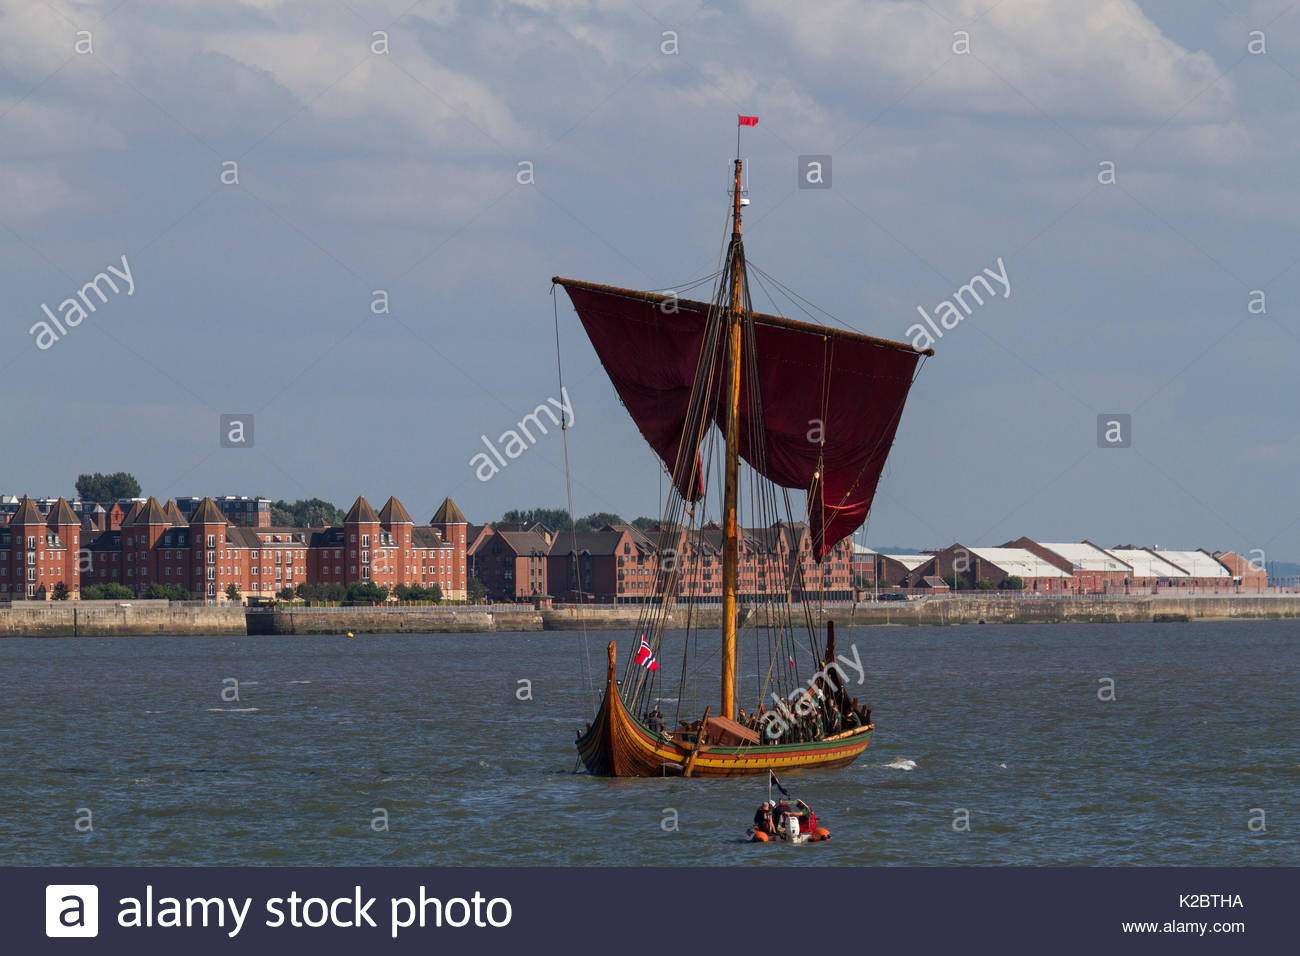 Draken Harald Harfagre (Dragon Harald Fairhair) on the River Mersey. Partially under sail as she departs Birkenhead for her journey back to Norway via the Isle of Man, River Mersey, Merseyside, United Kingdom, 4th August 2014. All non-editorial uses must be cleared individually. - Stock Image